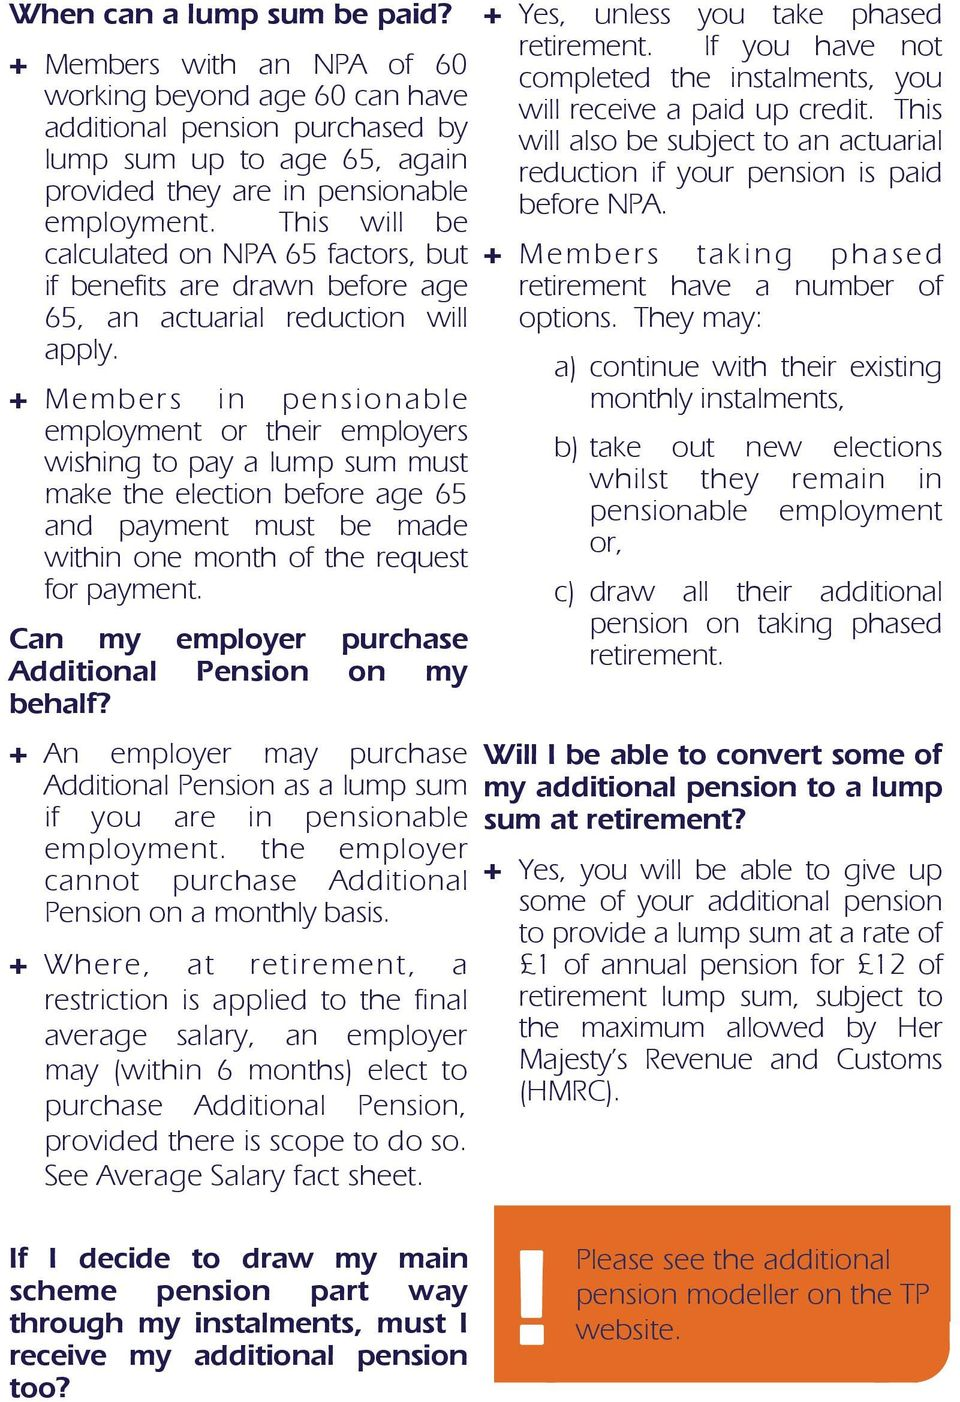 This additional pension purchased by will also be subject to an actuarial lump sum up to age 65, again reduction if your pension is paid provided they are in pensionable before NPA. employment.